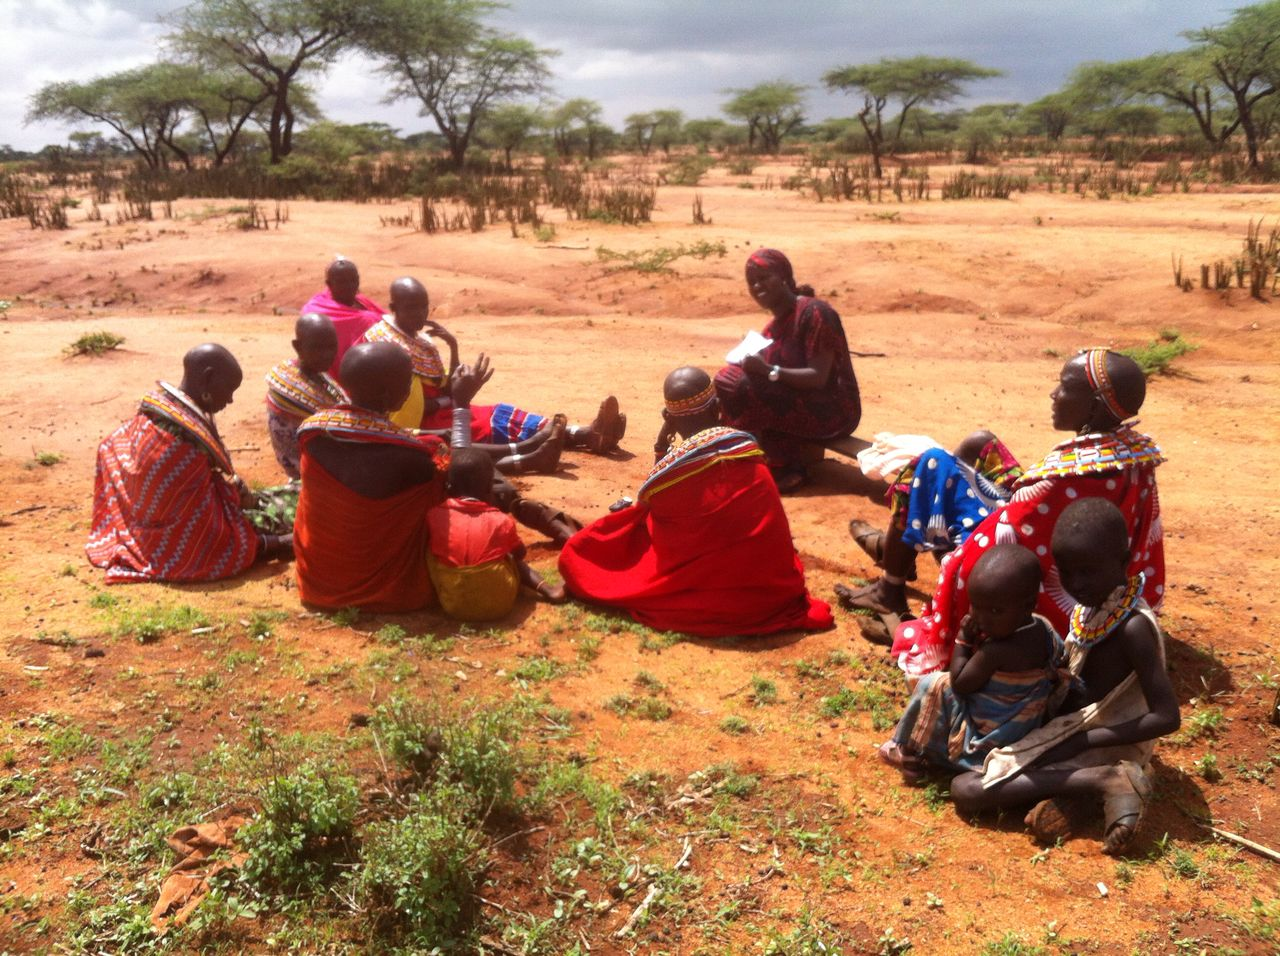 Research assistant, Jaqueline Nalenoi, discussing water security with a group of women in Sessia location, Samburu